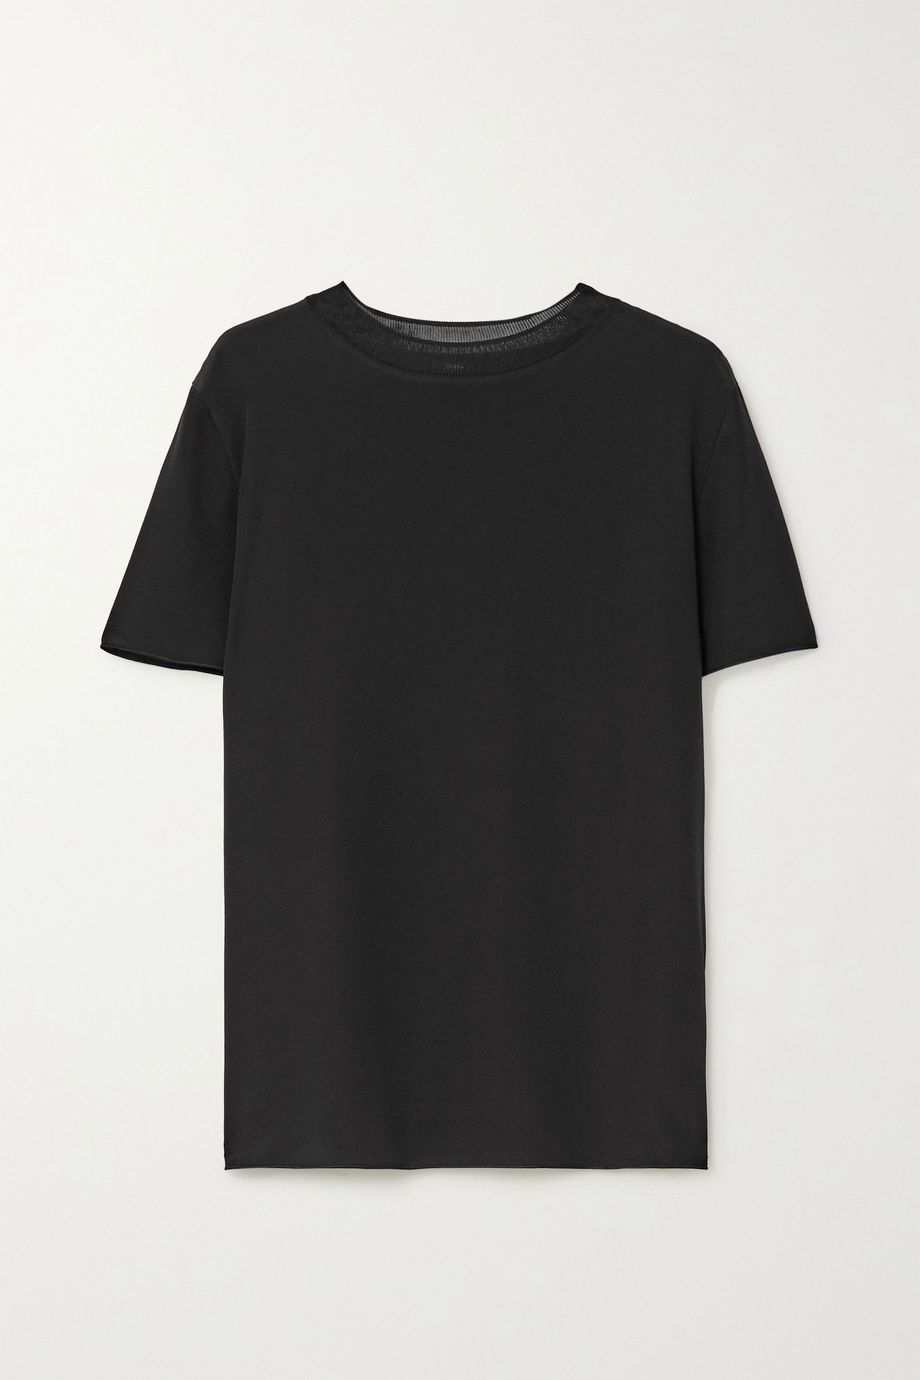 Joseph Rubin ribbed knit-trimmed silk-crepe T-shirt